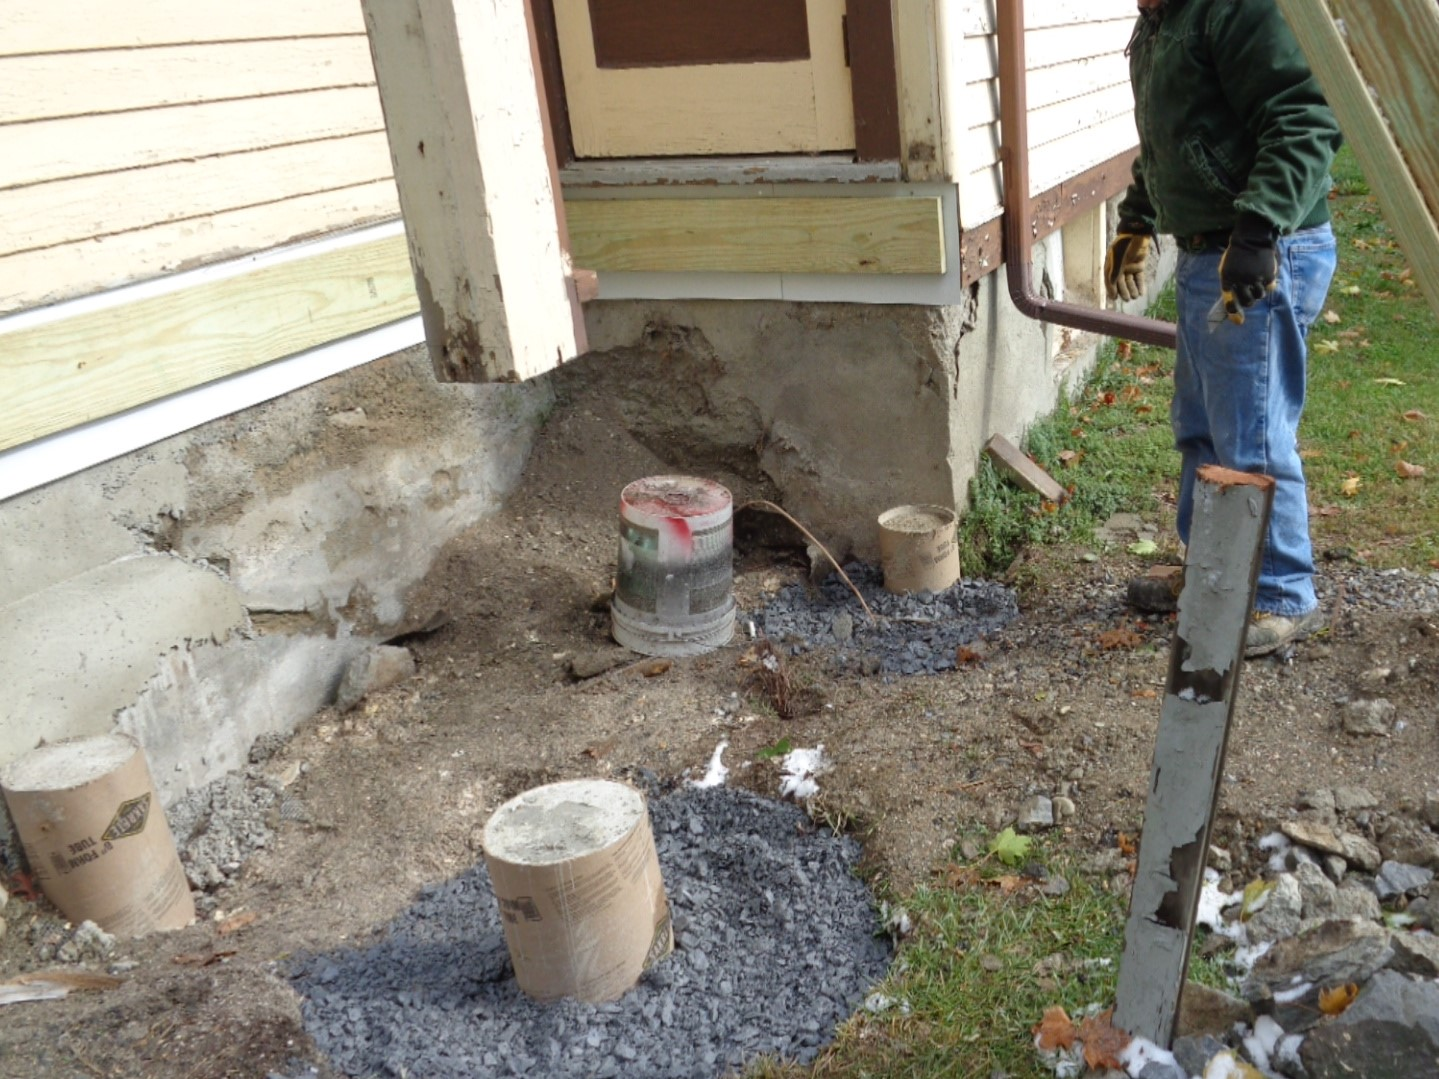 The back porch being built